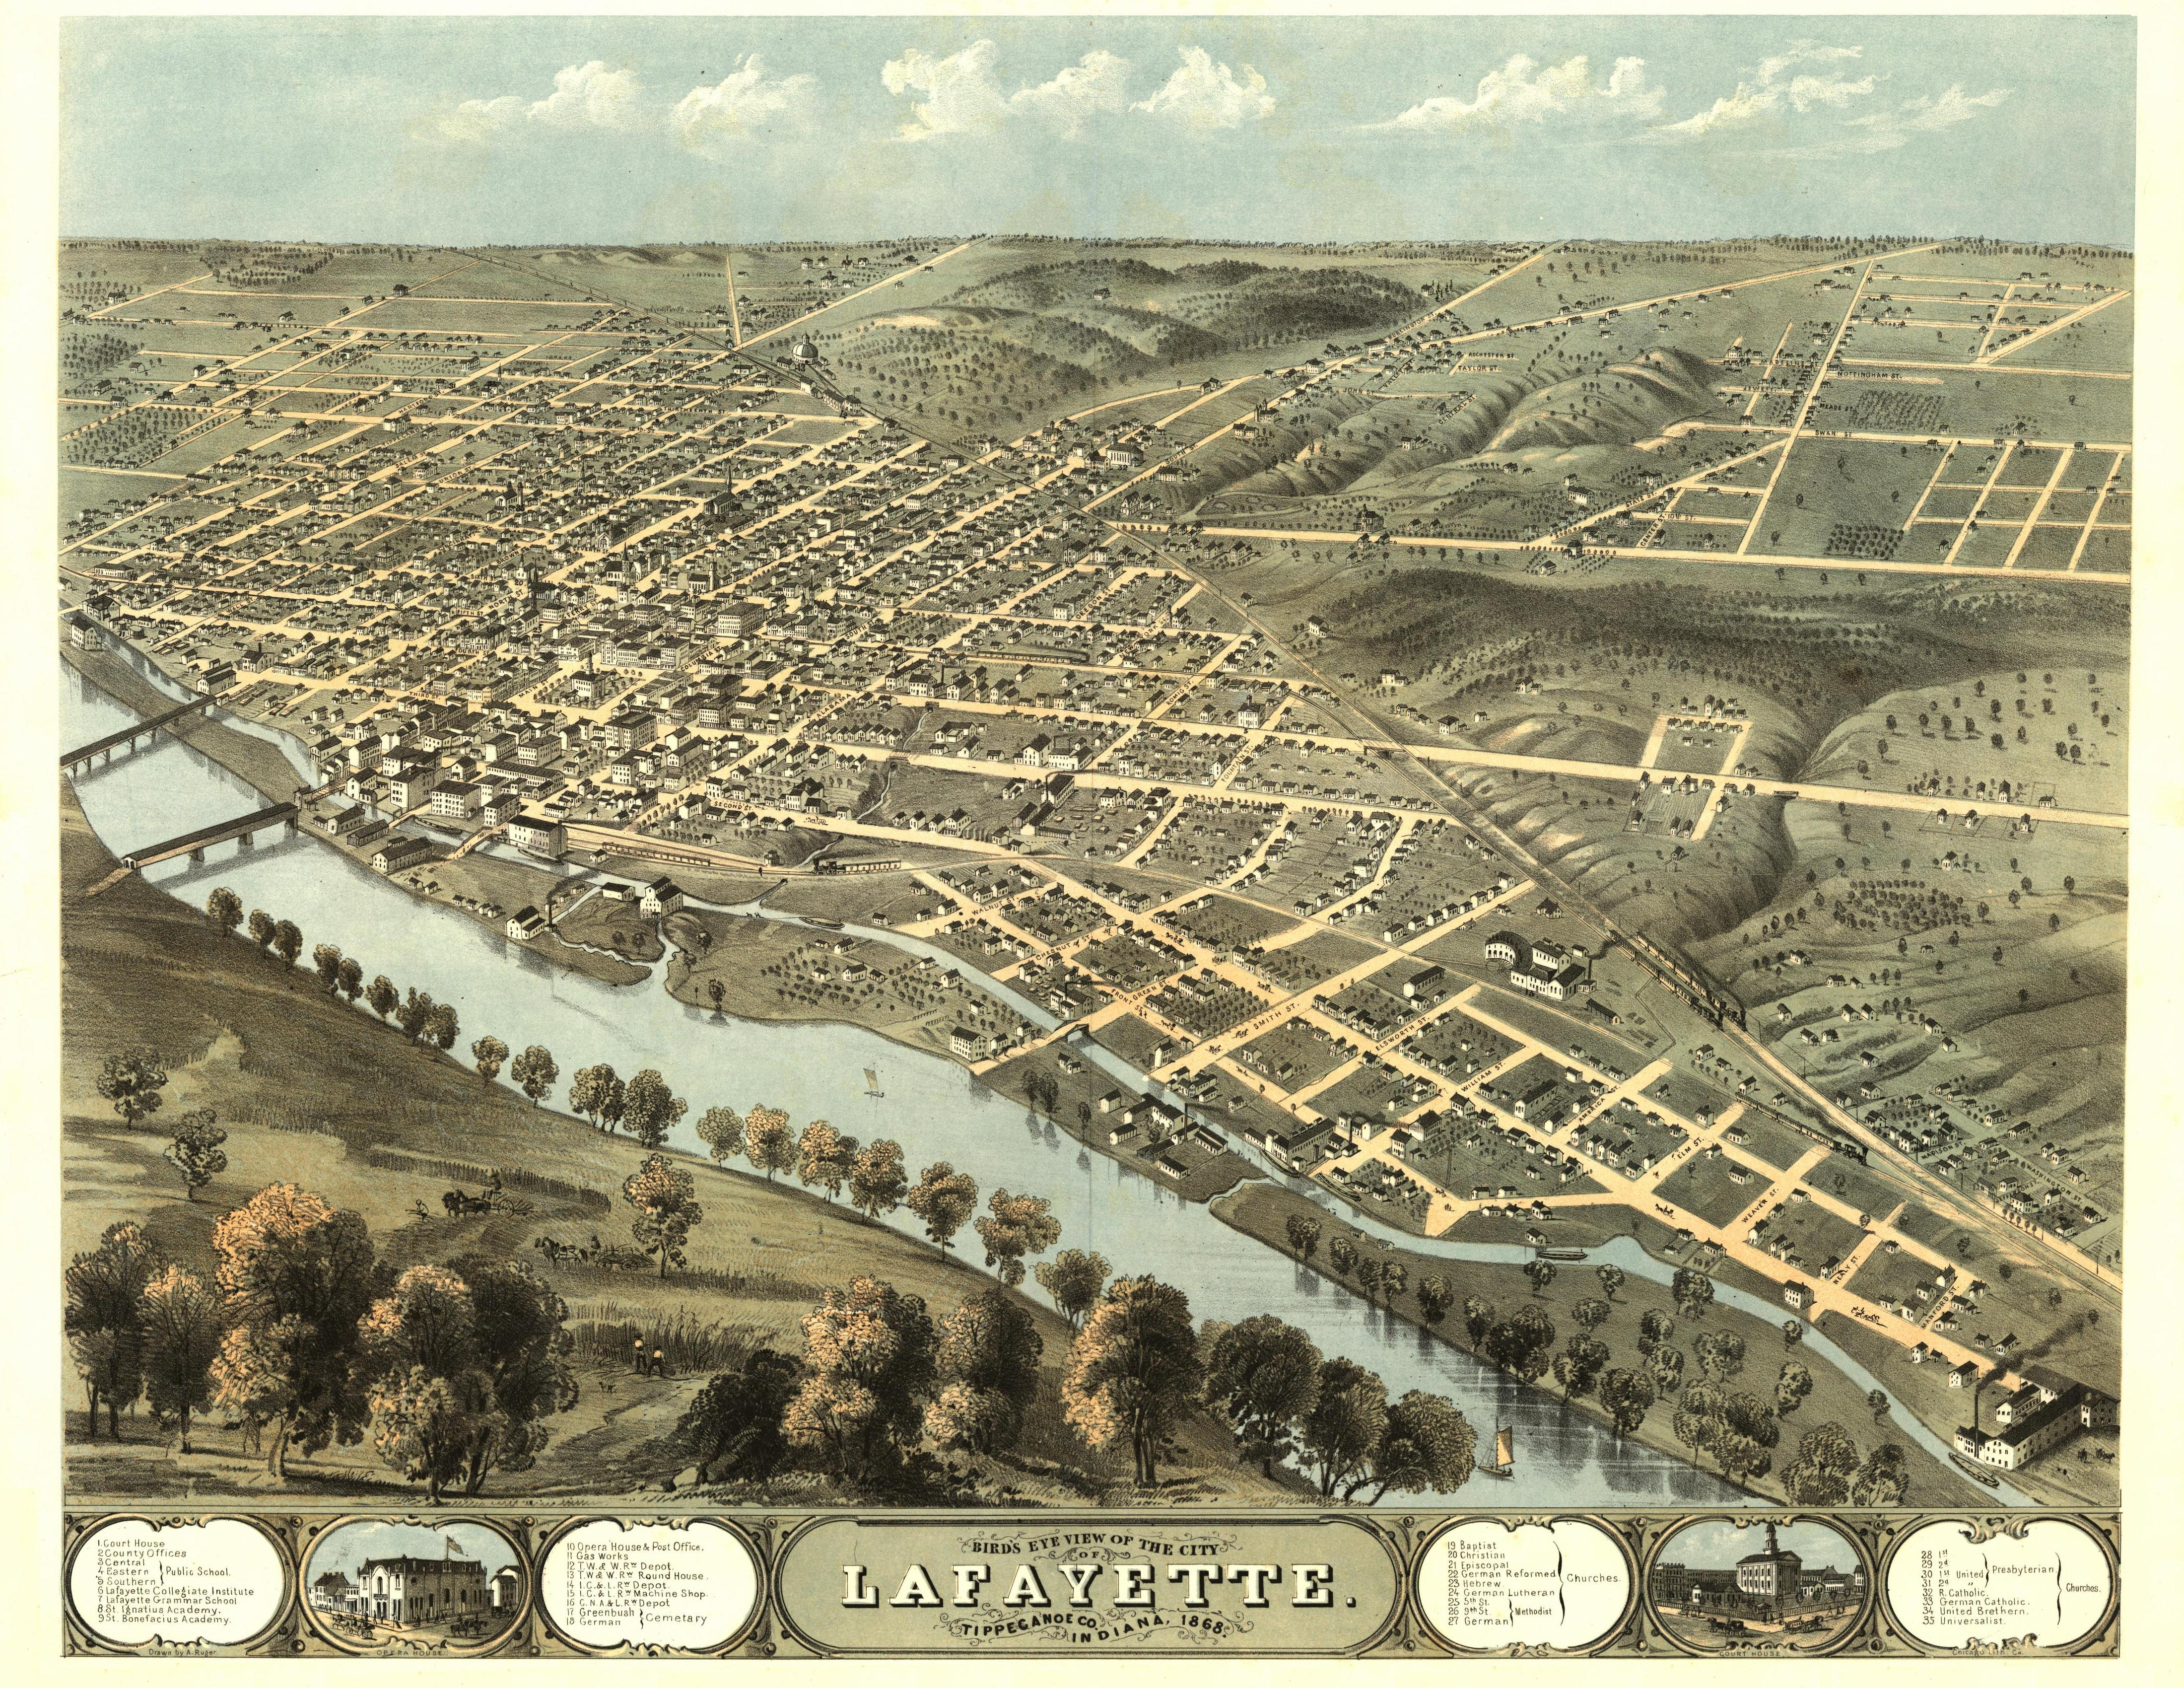 This panoramic map from LC Panoramic maps (2nd ed.), page 2, illustrates a bird's-eye view of Lafayette, Indiana in 1868. Drawn 1868 by A. Ruger and published in Chicago by Chicago Lith. Co., the perspective map is indexed for points of interest.